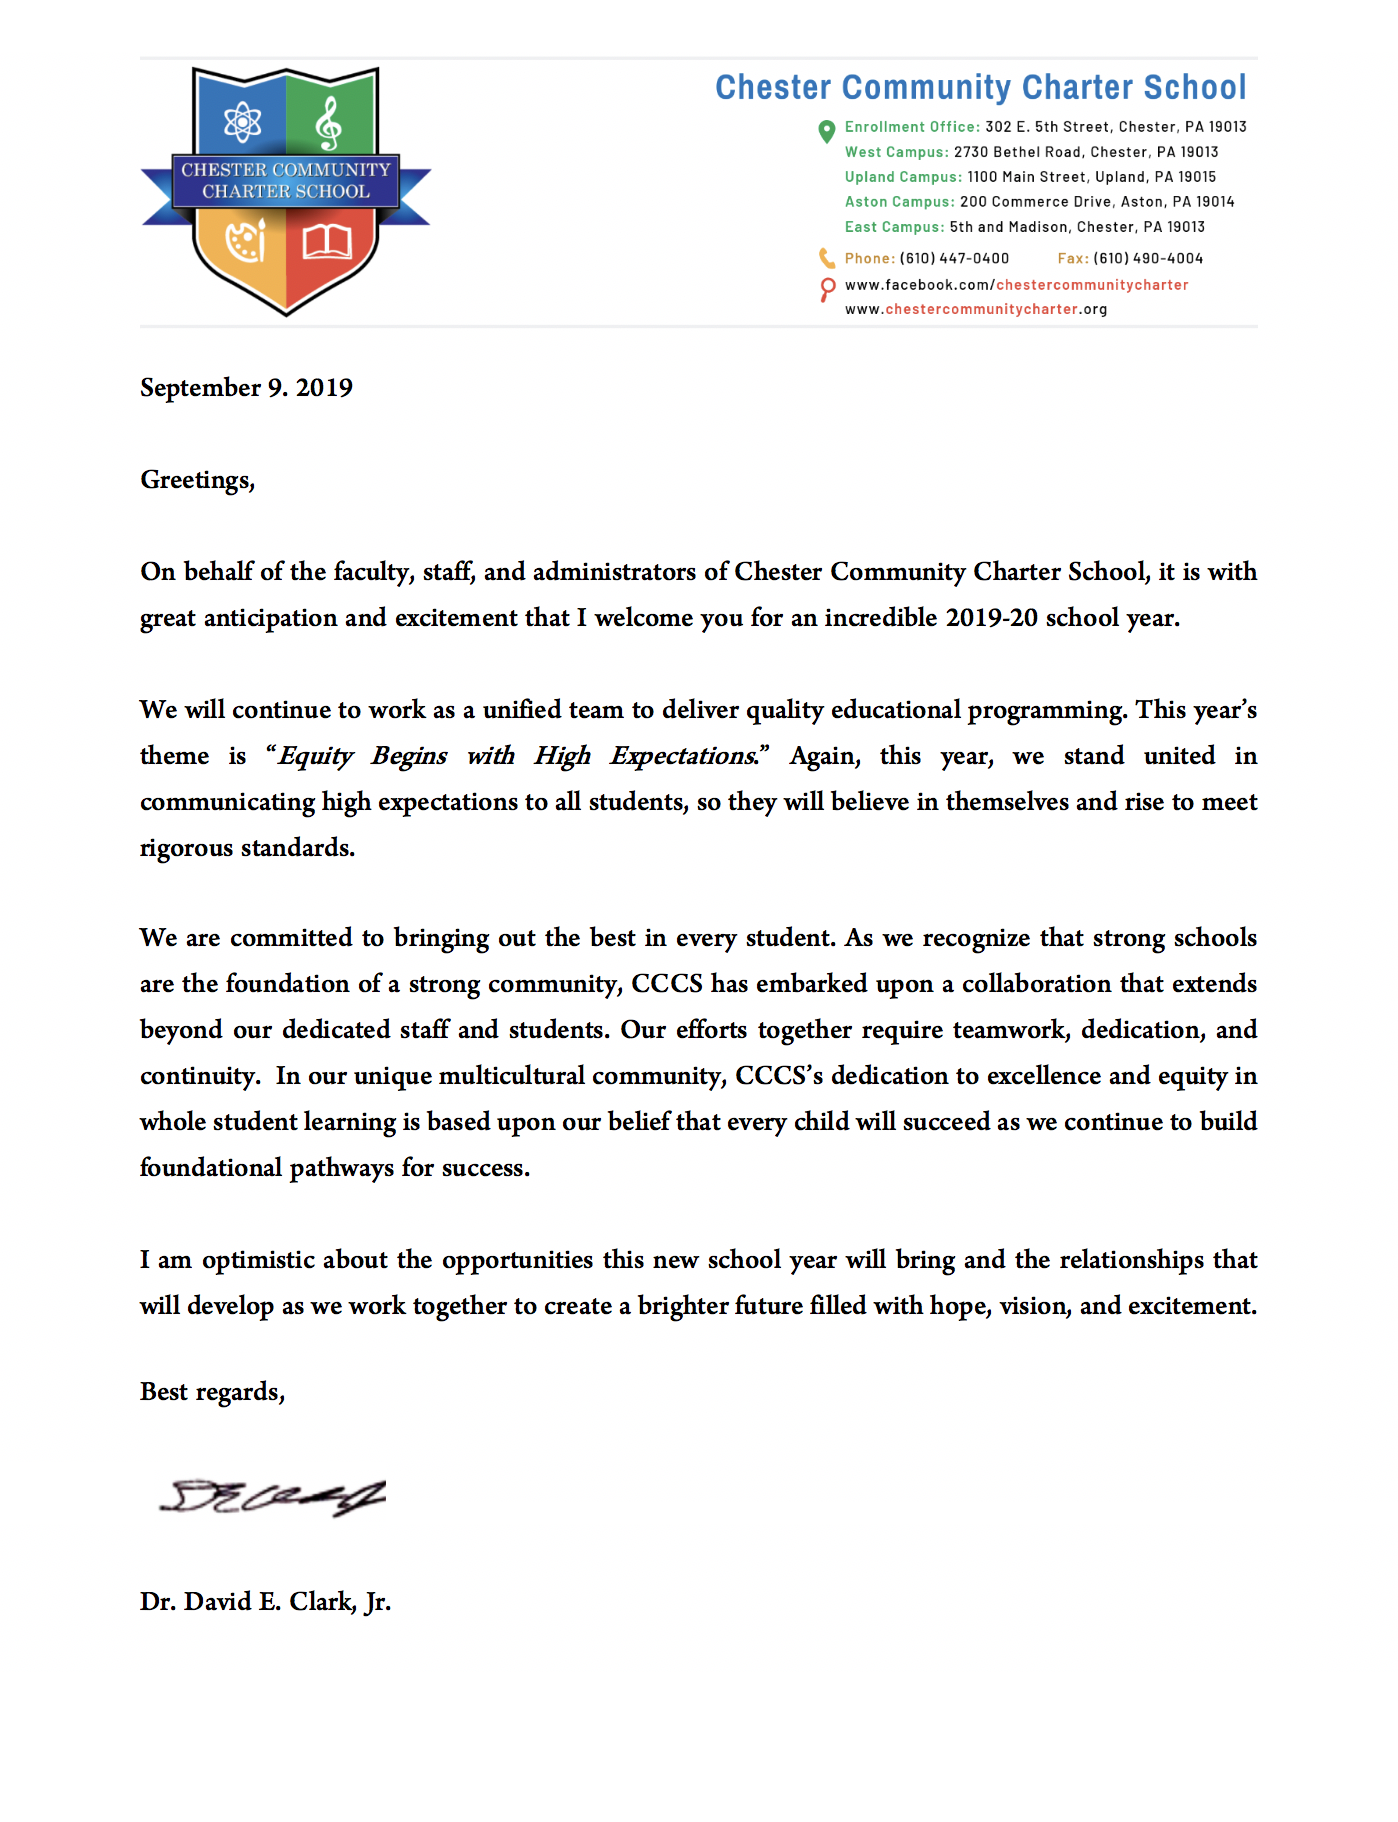 Dr Clark Parent Greeting Letter 2019-2020.png